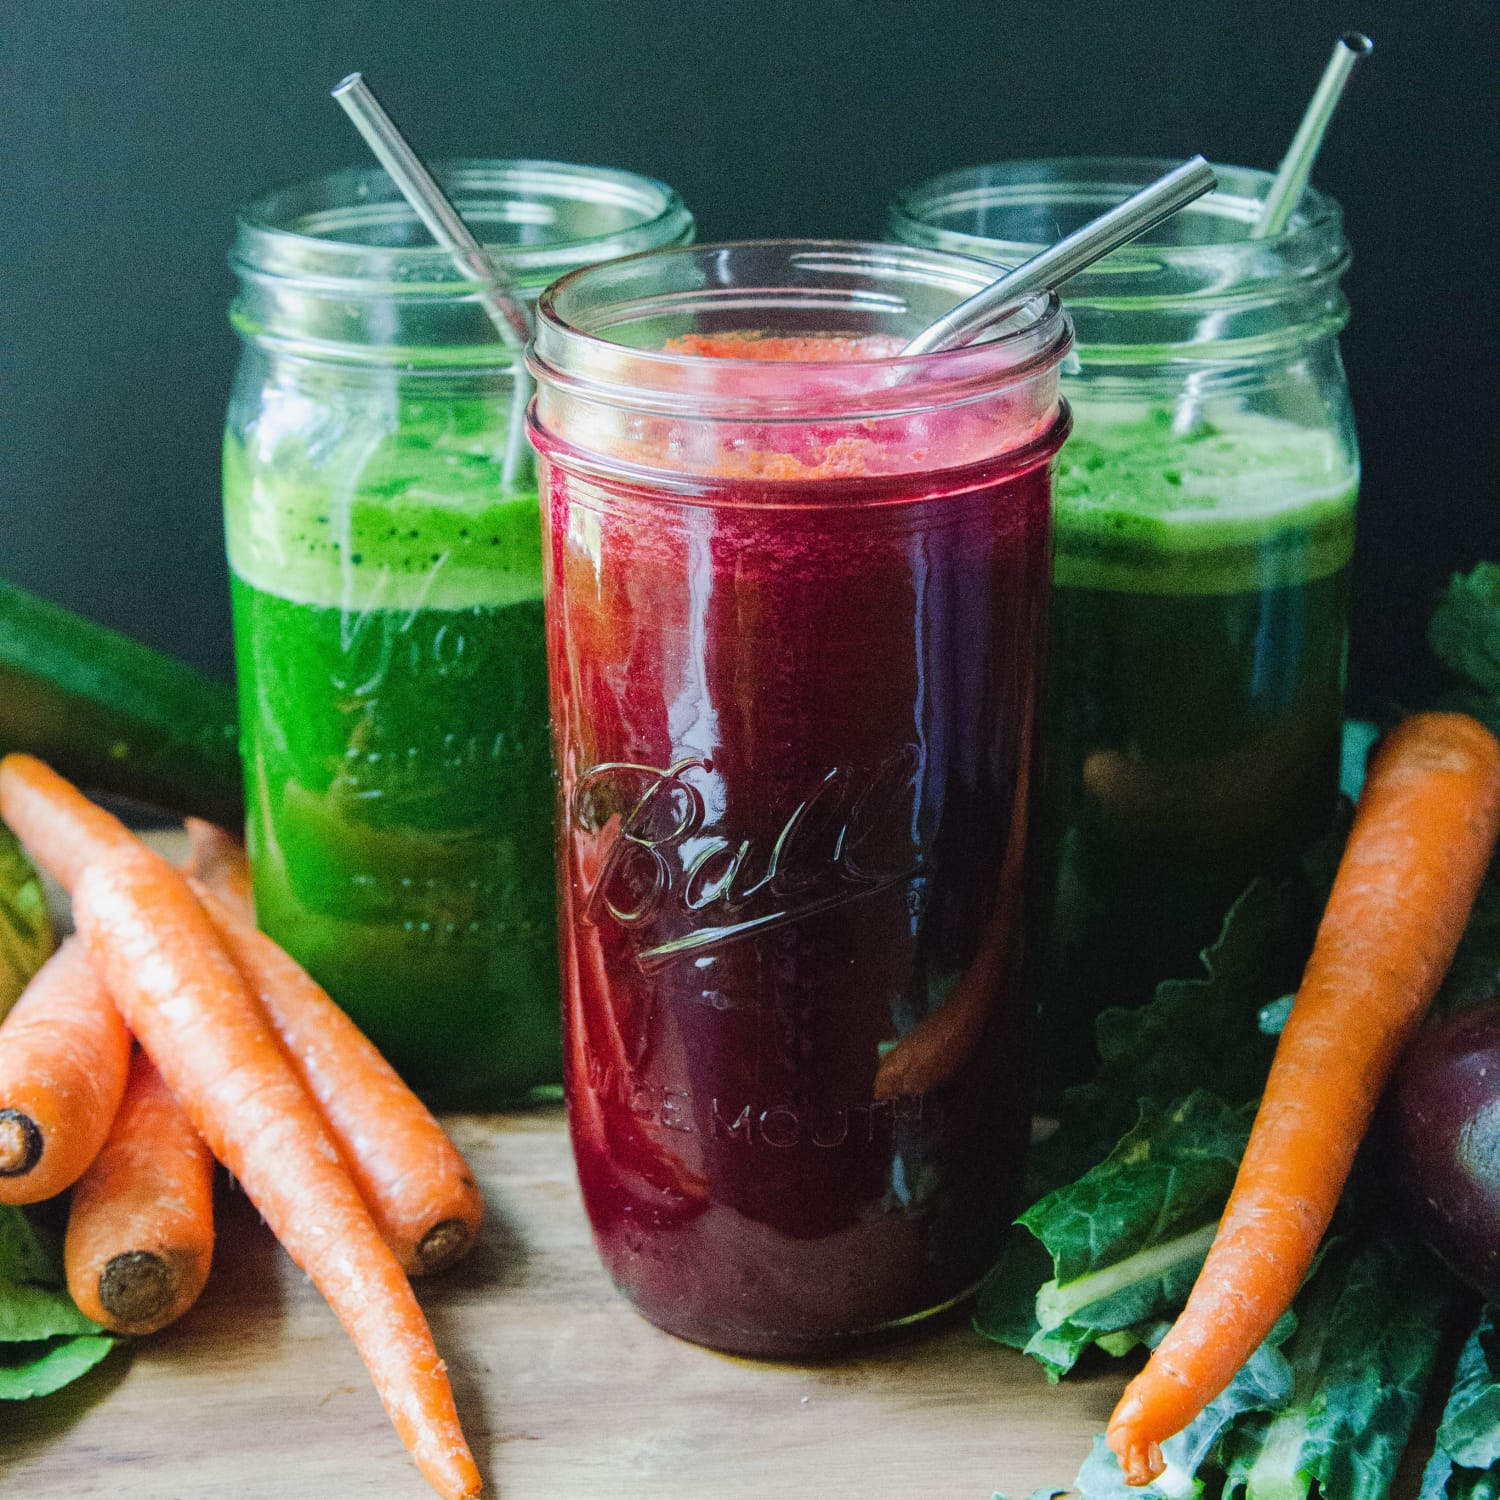 A Visual Guide to Juicing Vegetables: How Many Veggies Go in